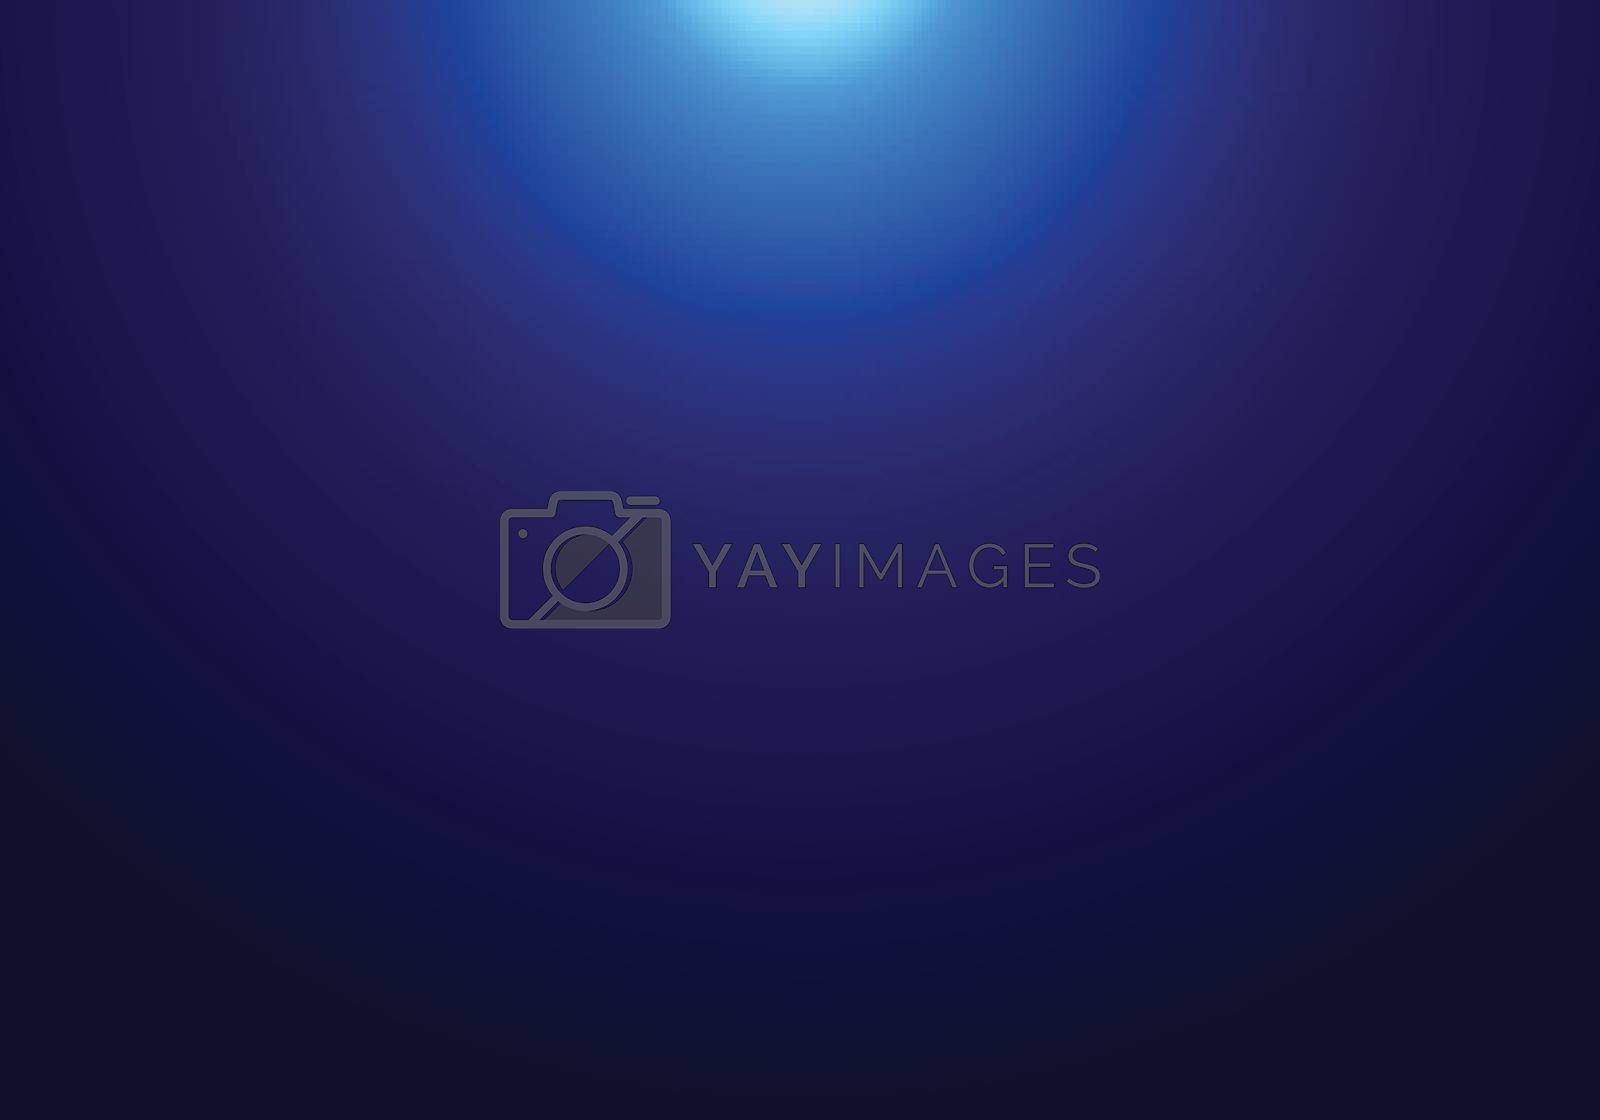 Abstract dark blue background with light from the top. Vector illustration